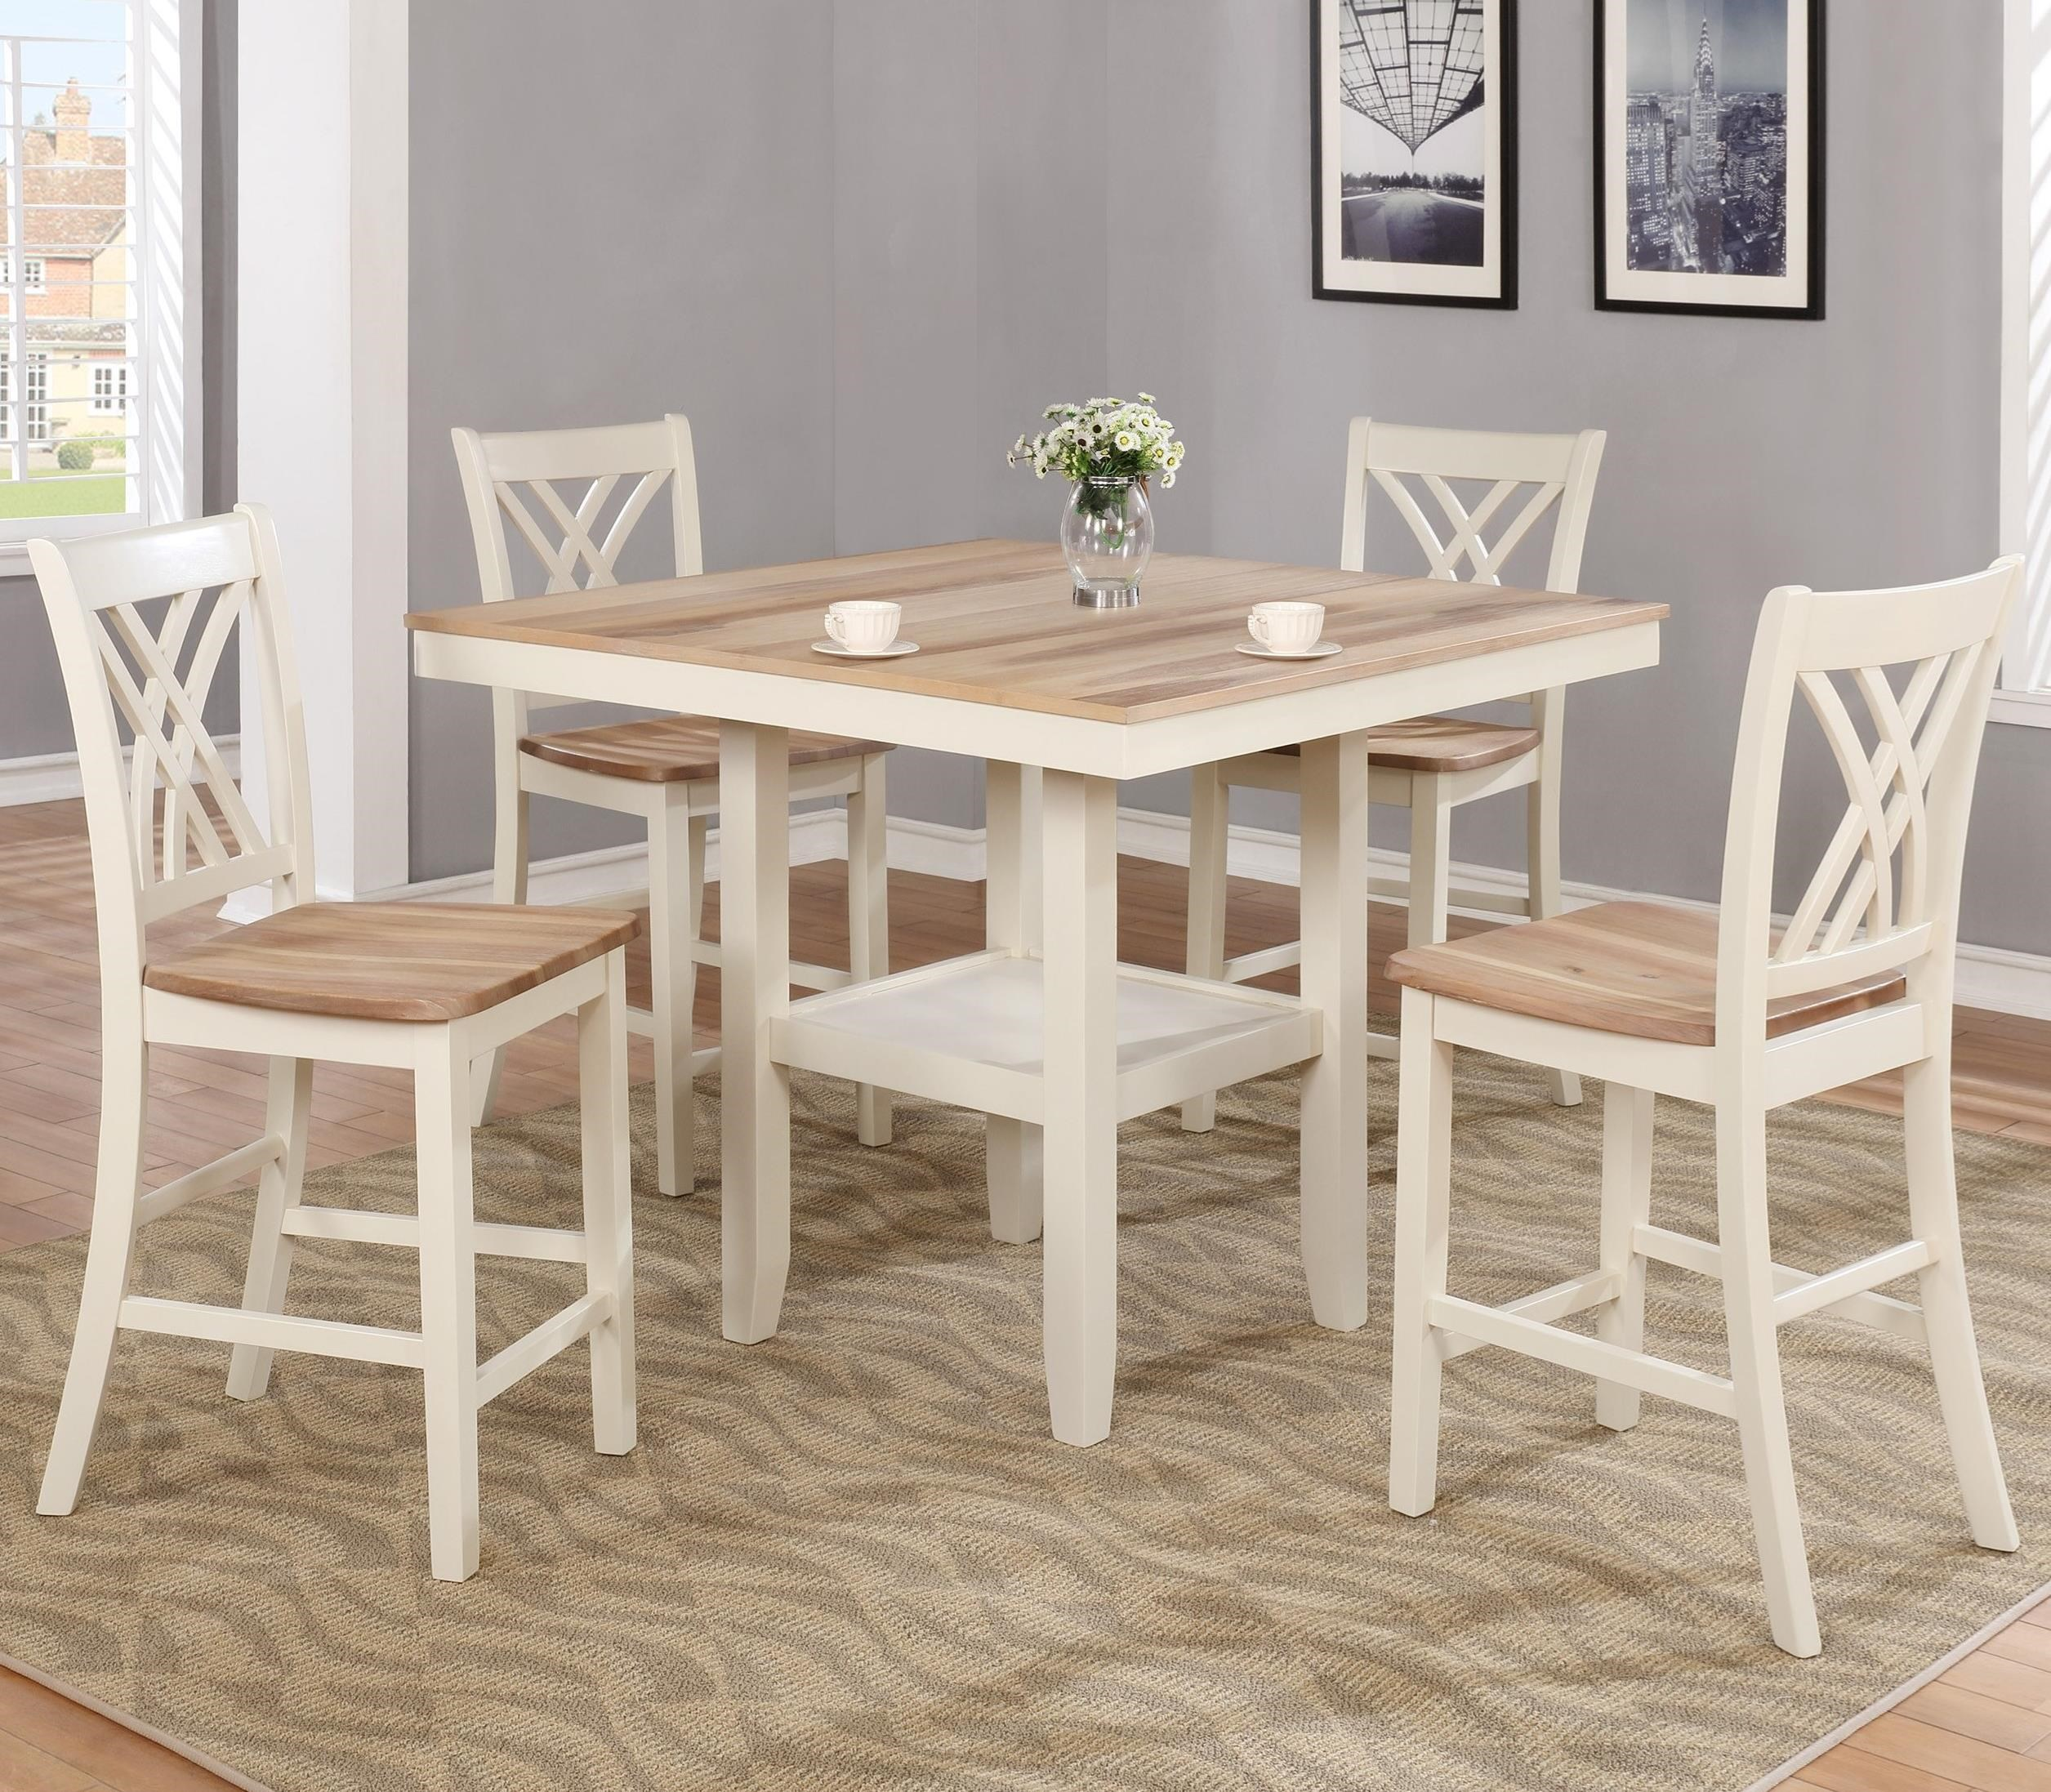 5 Pc Counter Height Table and Chair Set